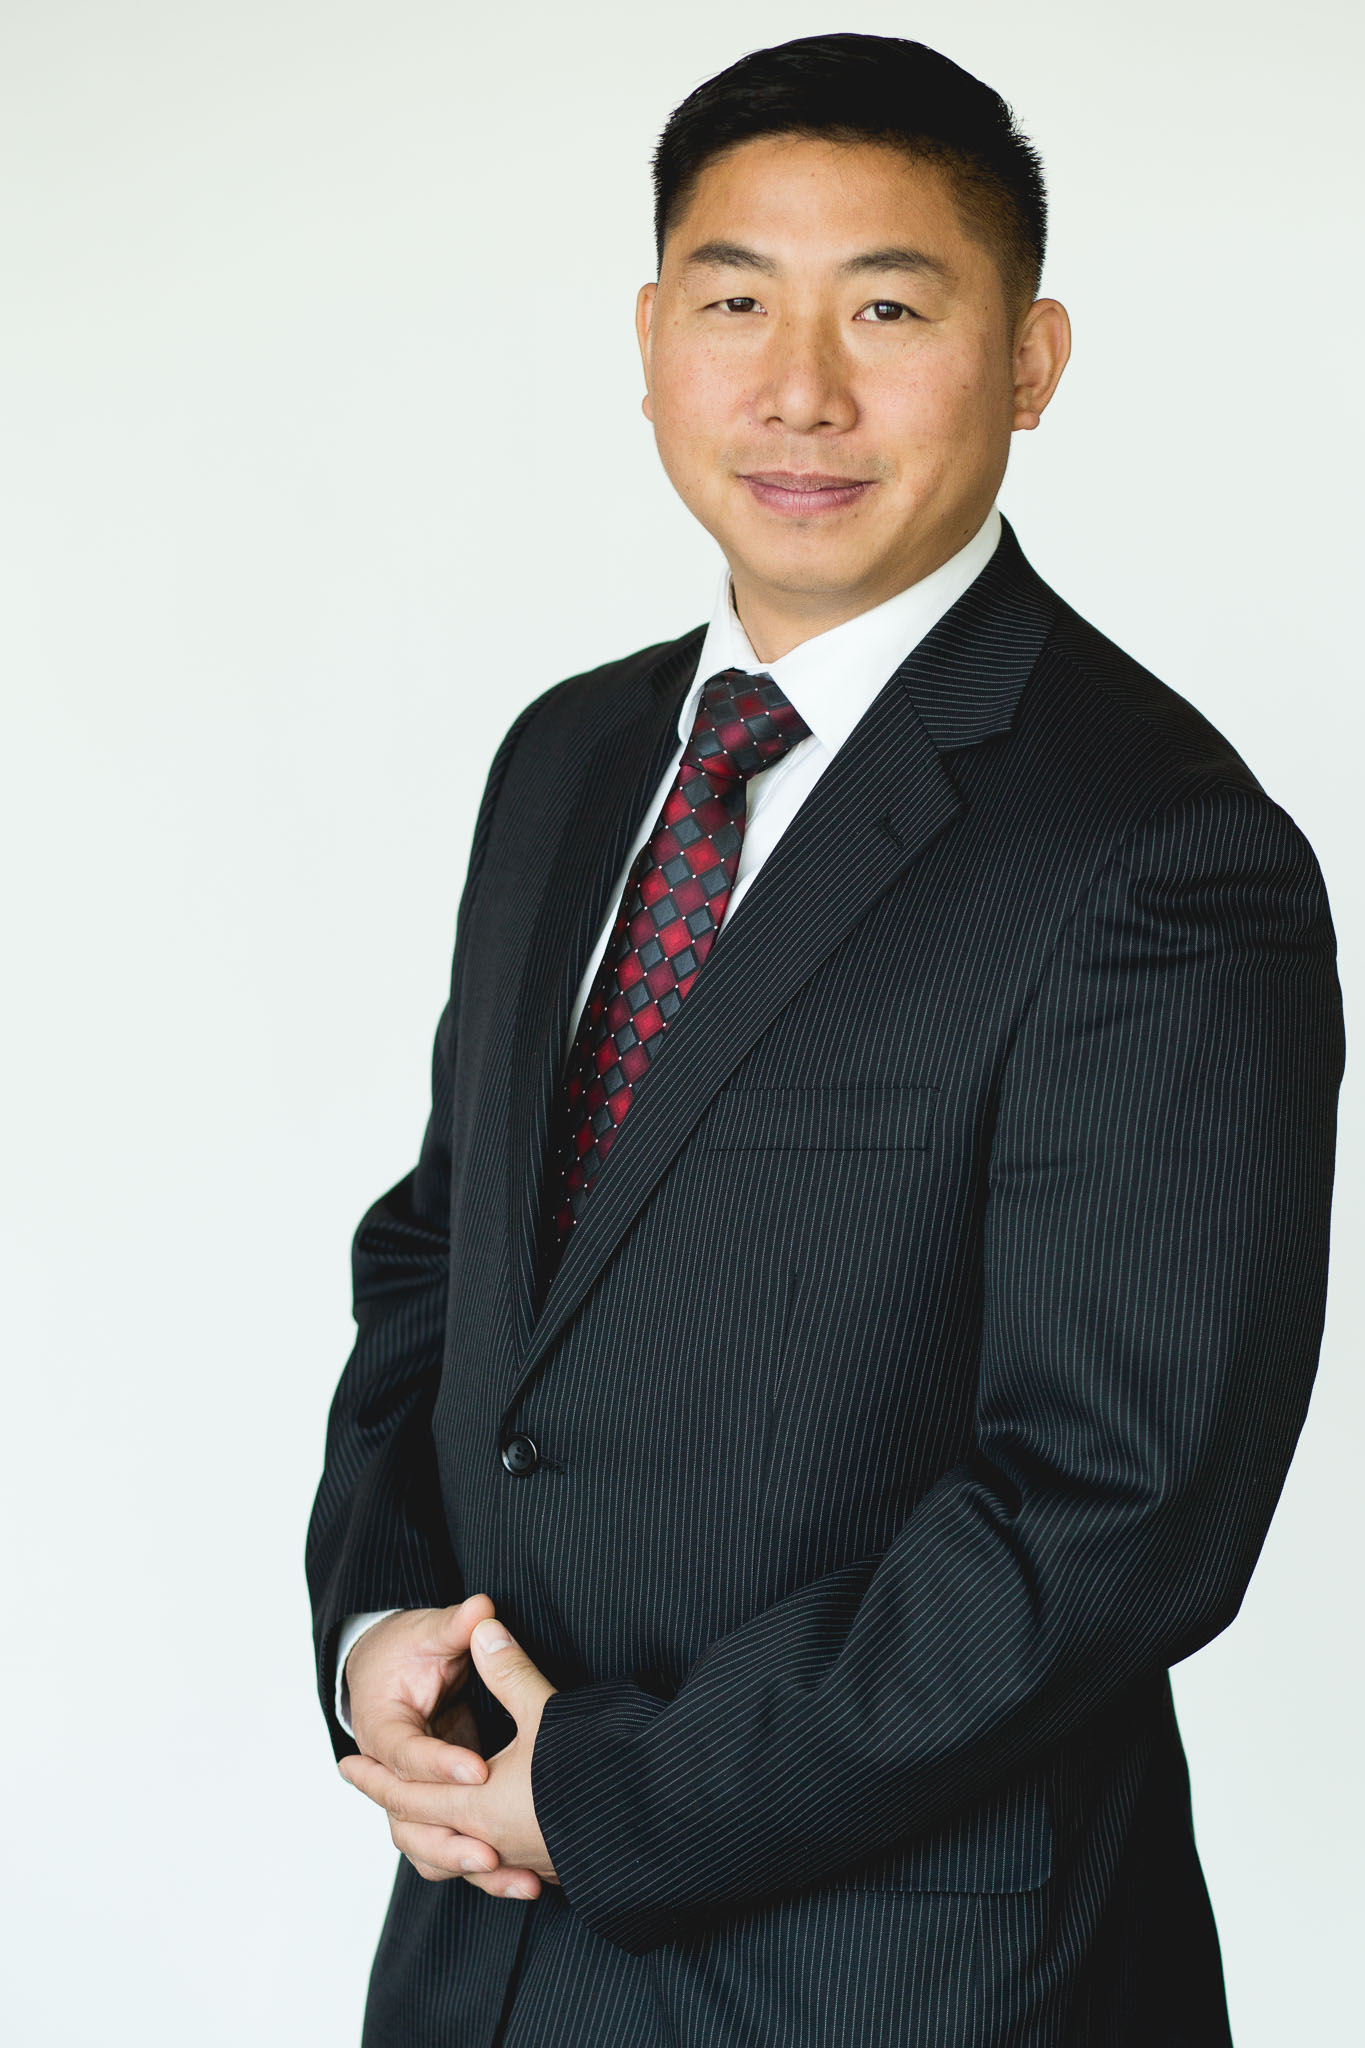 Ronald Fung, Investment Advisor - Mandeville Private Client Inc.